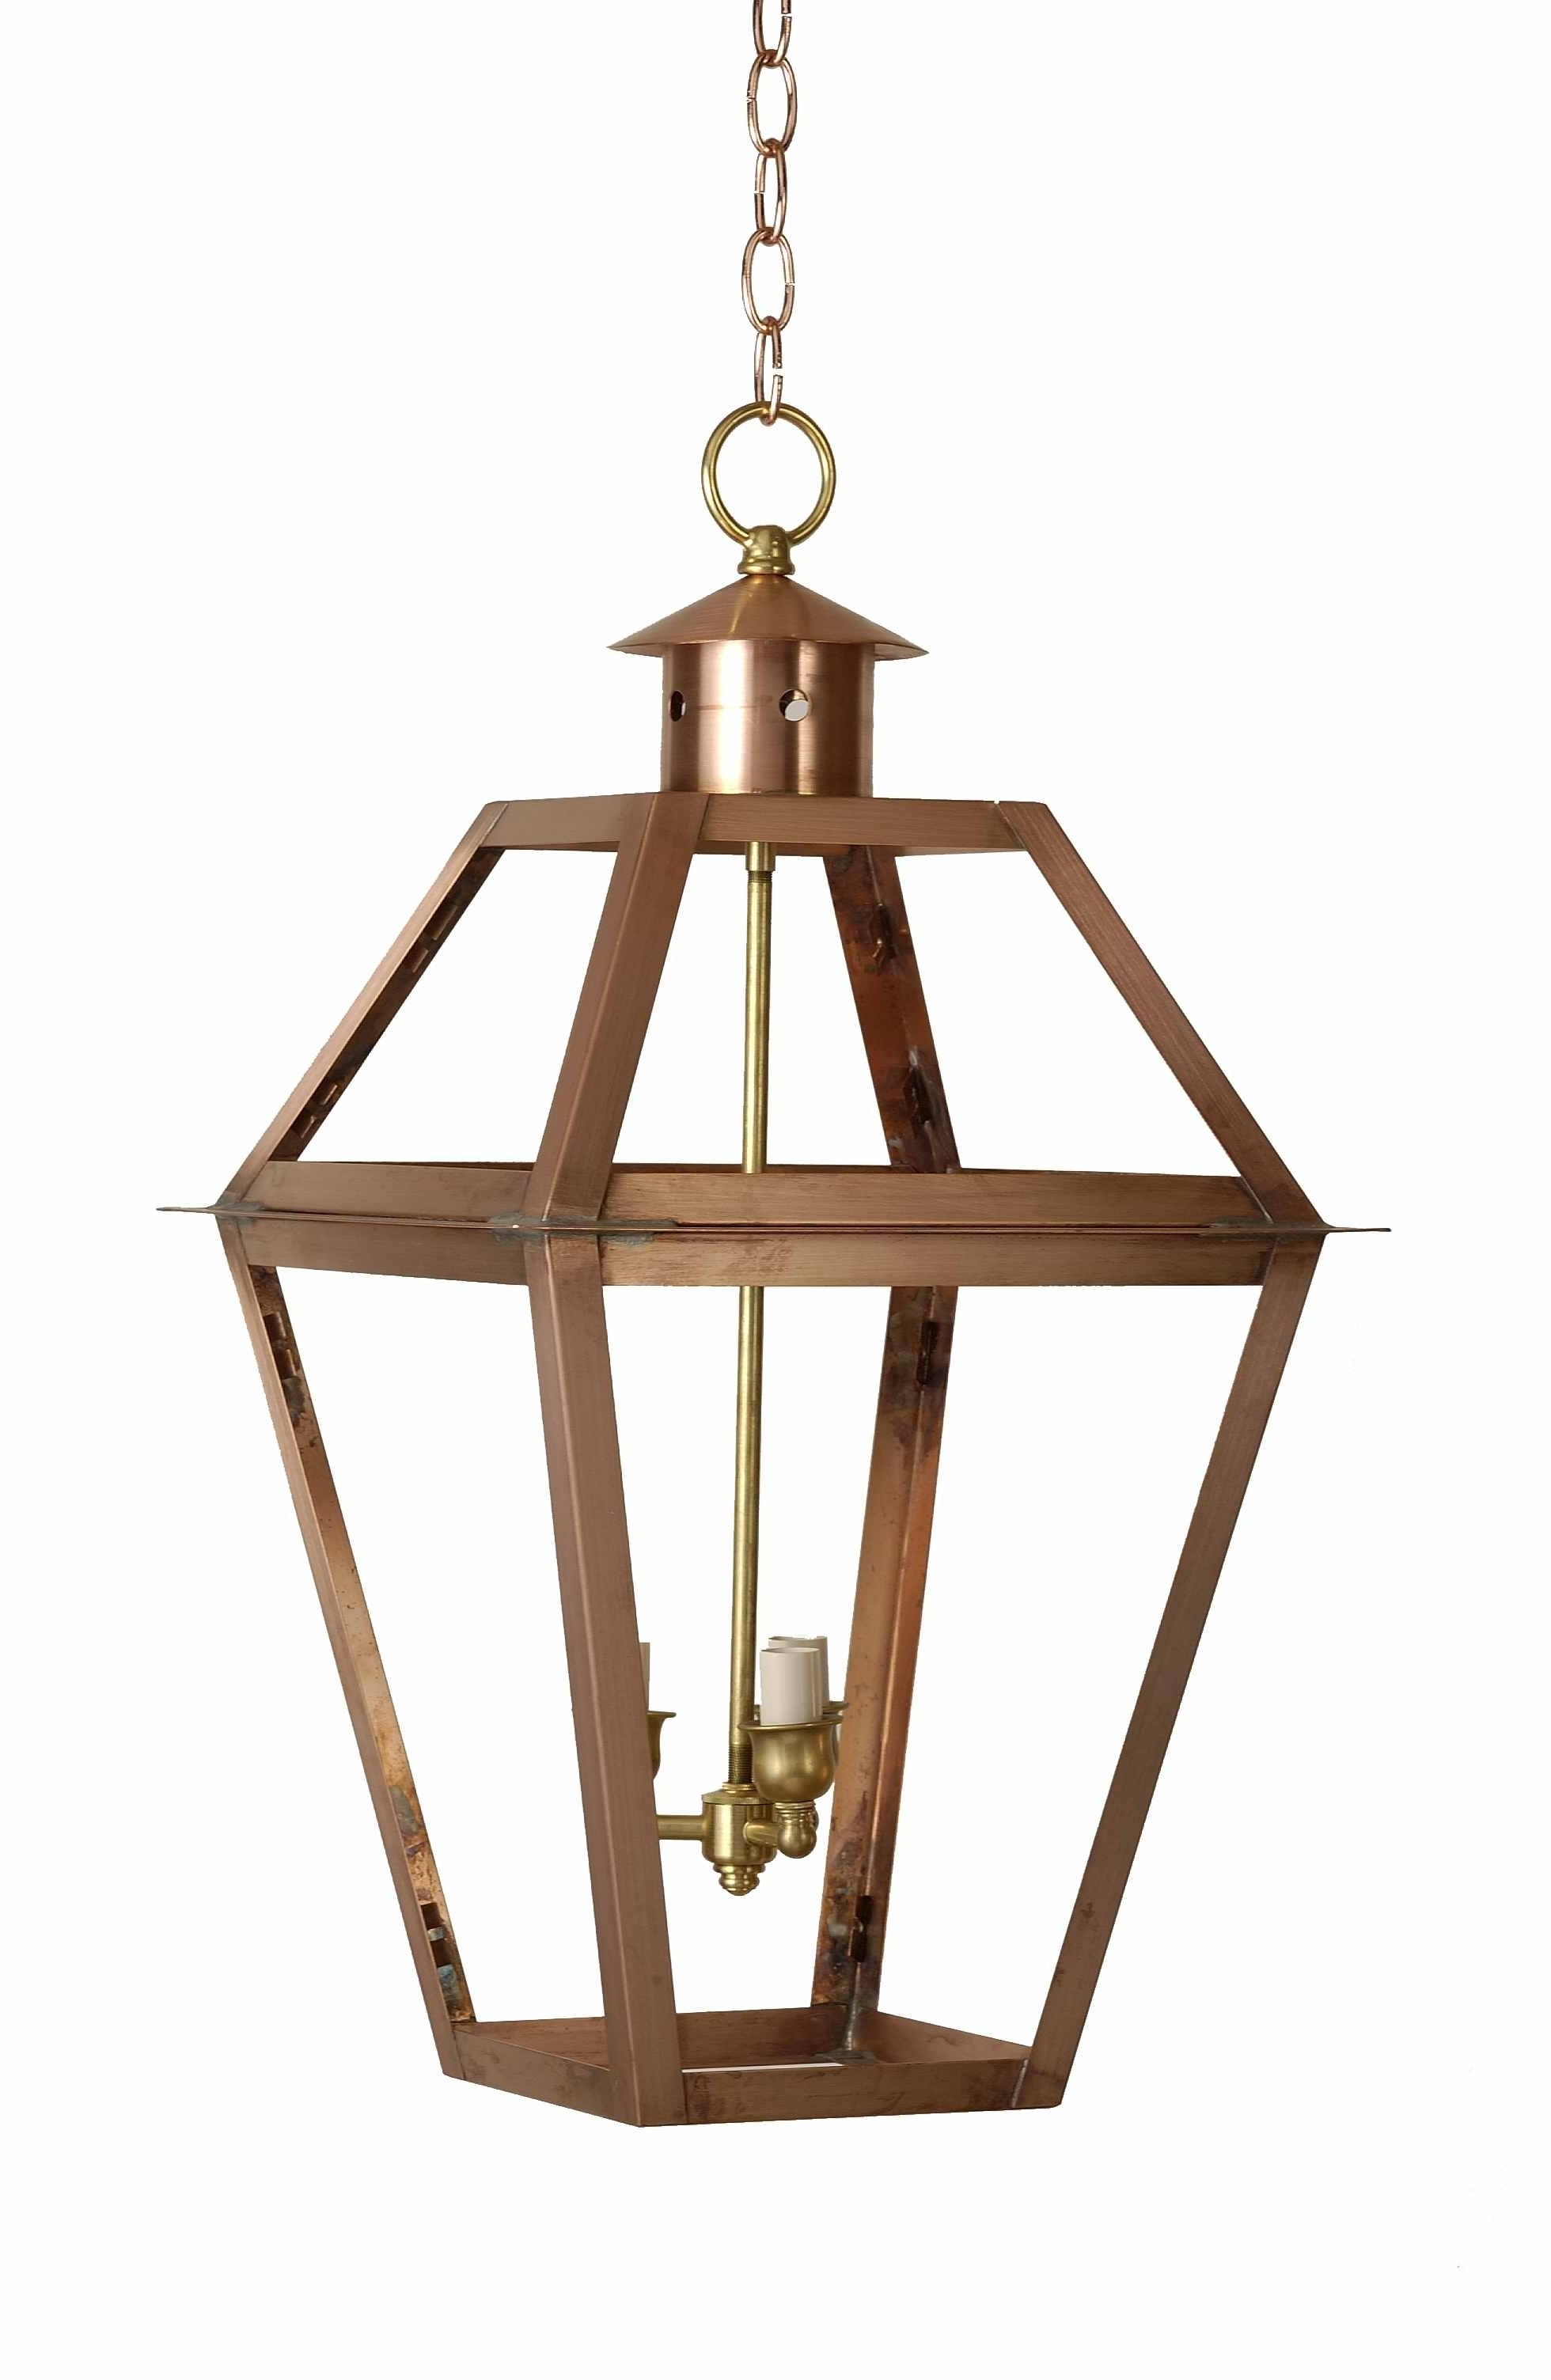 Outdoor Hanging Lanterns For Well Known Charleston Chain Mount Outdoor Lantern – Hanging Lanterns – Outdoor (View 10 of 20)